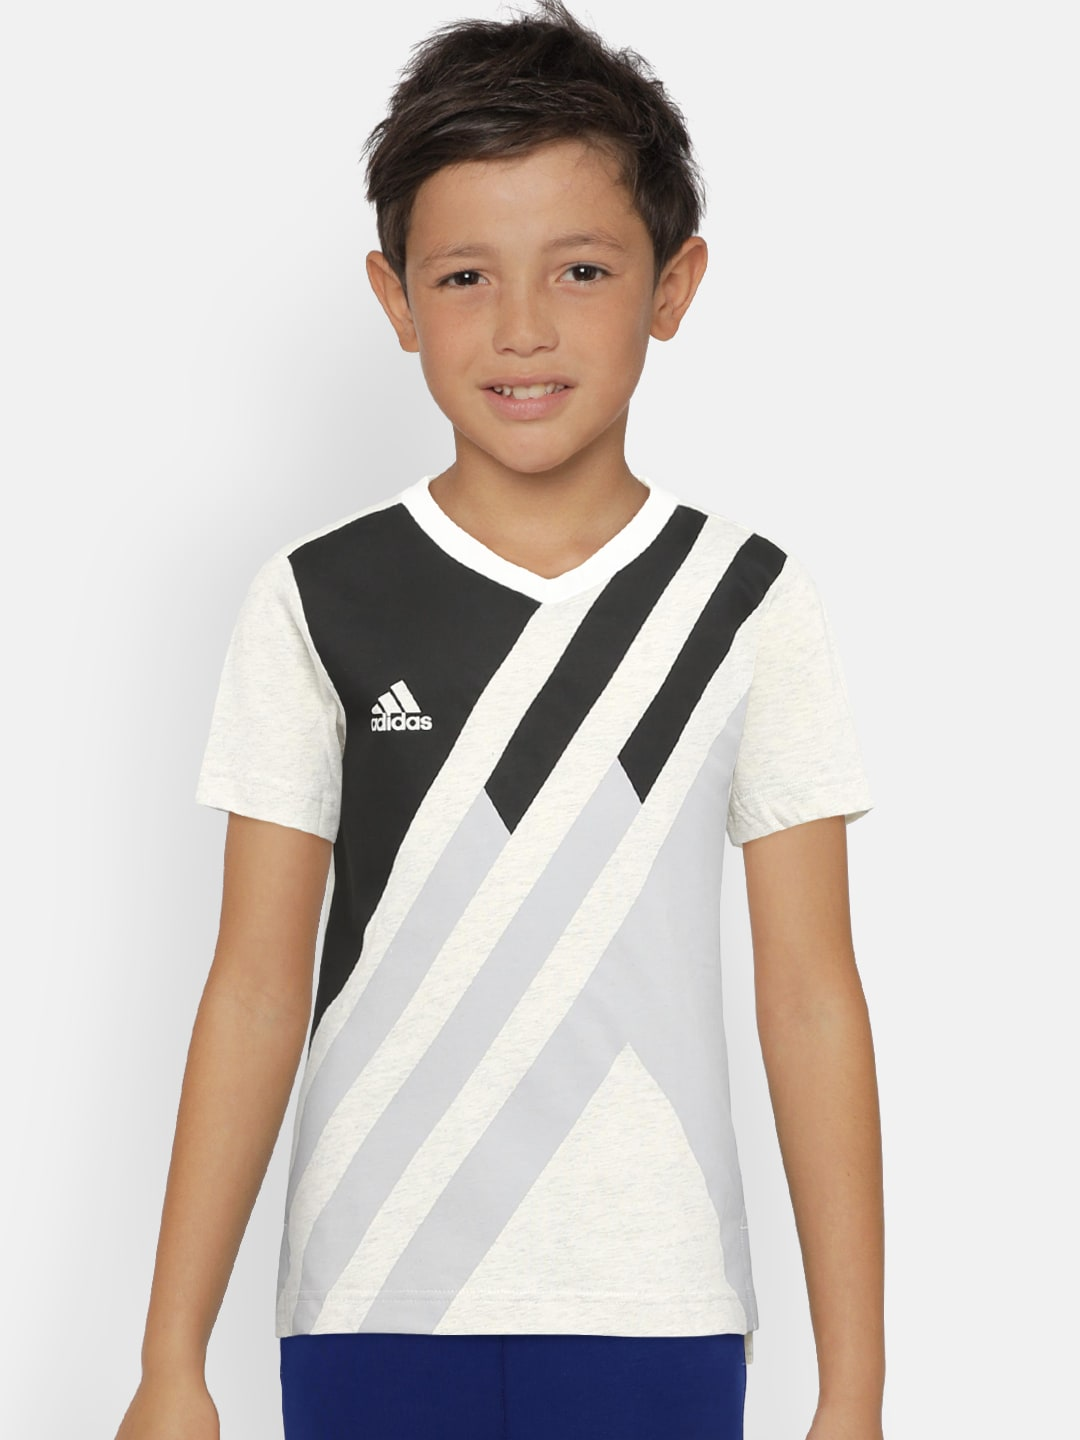 designer fashion 8d2a9 27e39 Adidas Boys Apparel Size G - Buy Adidas Boys Apparel Size G online in India